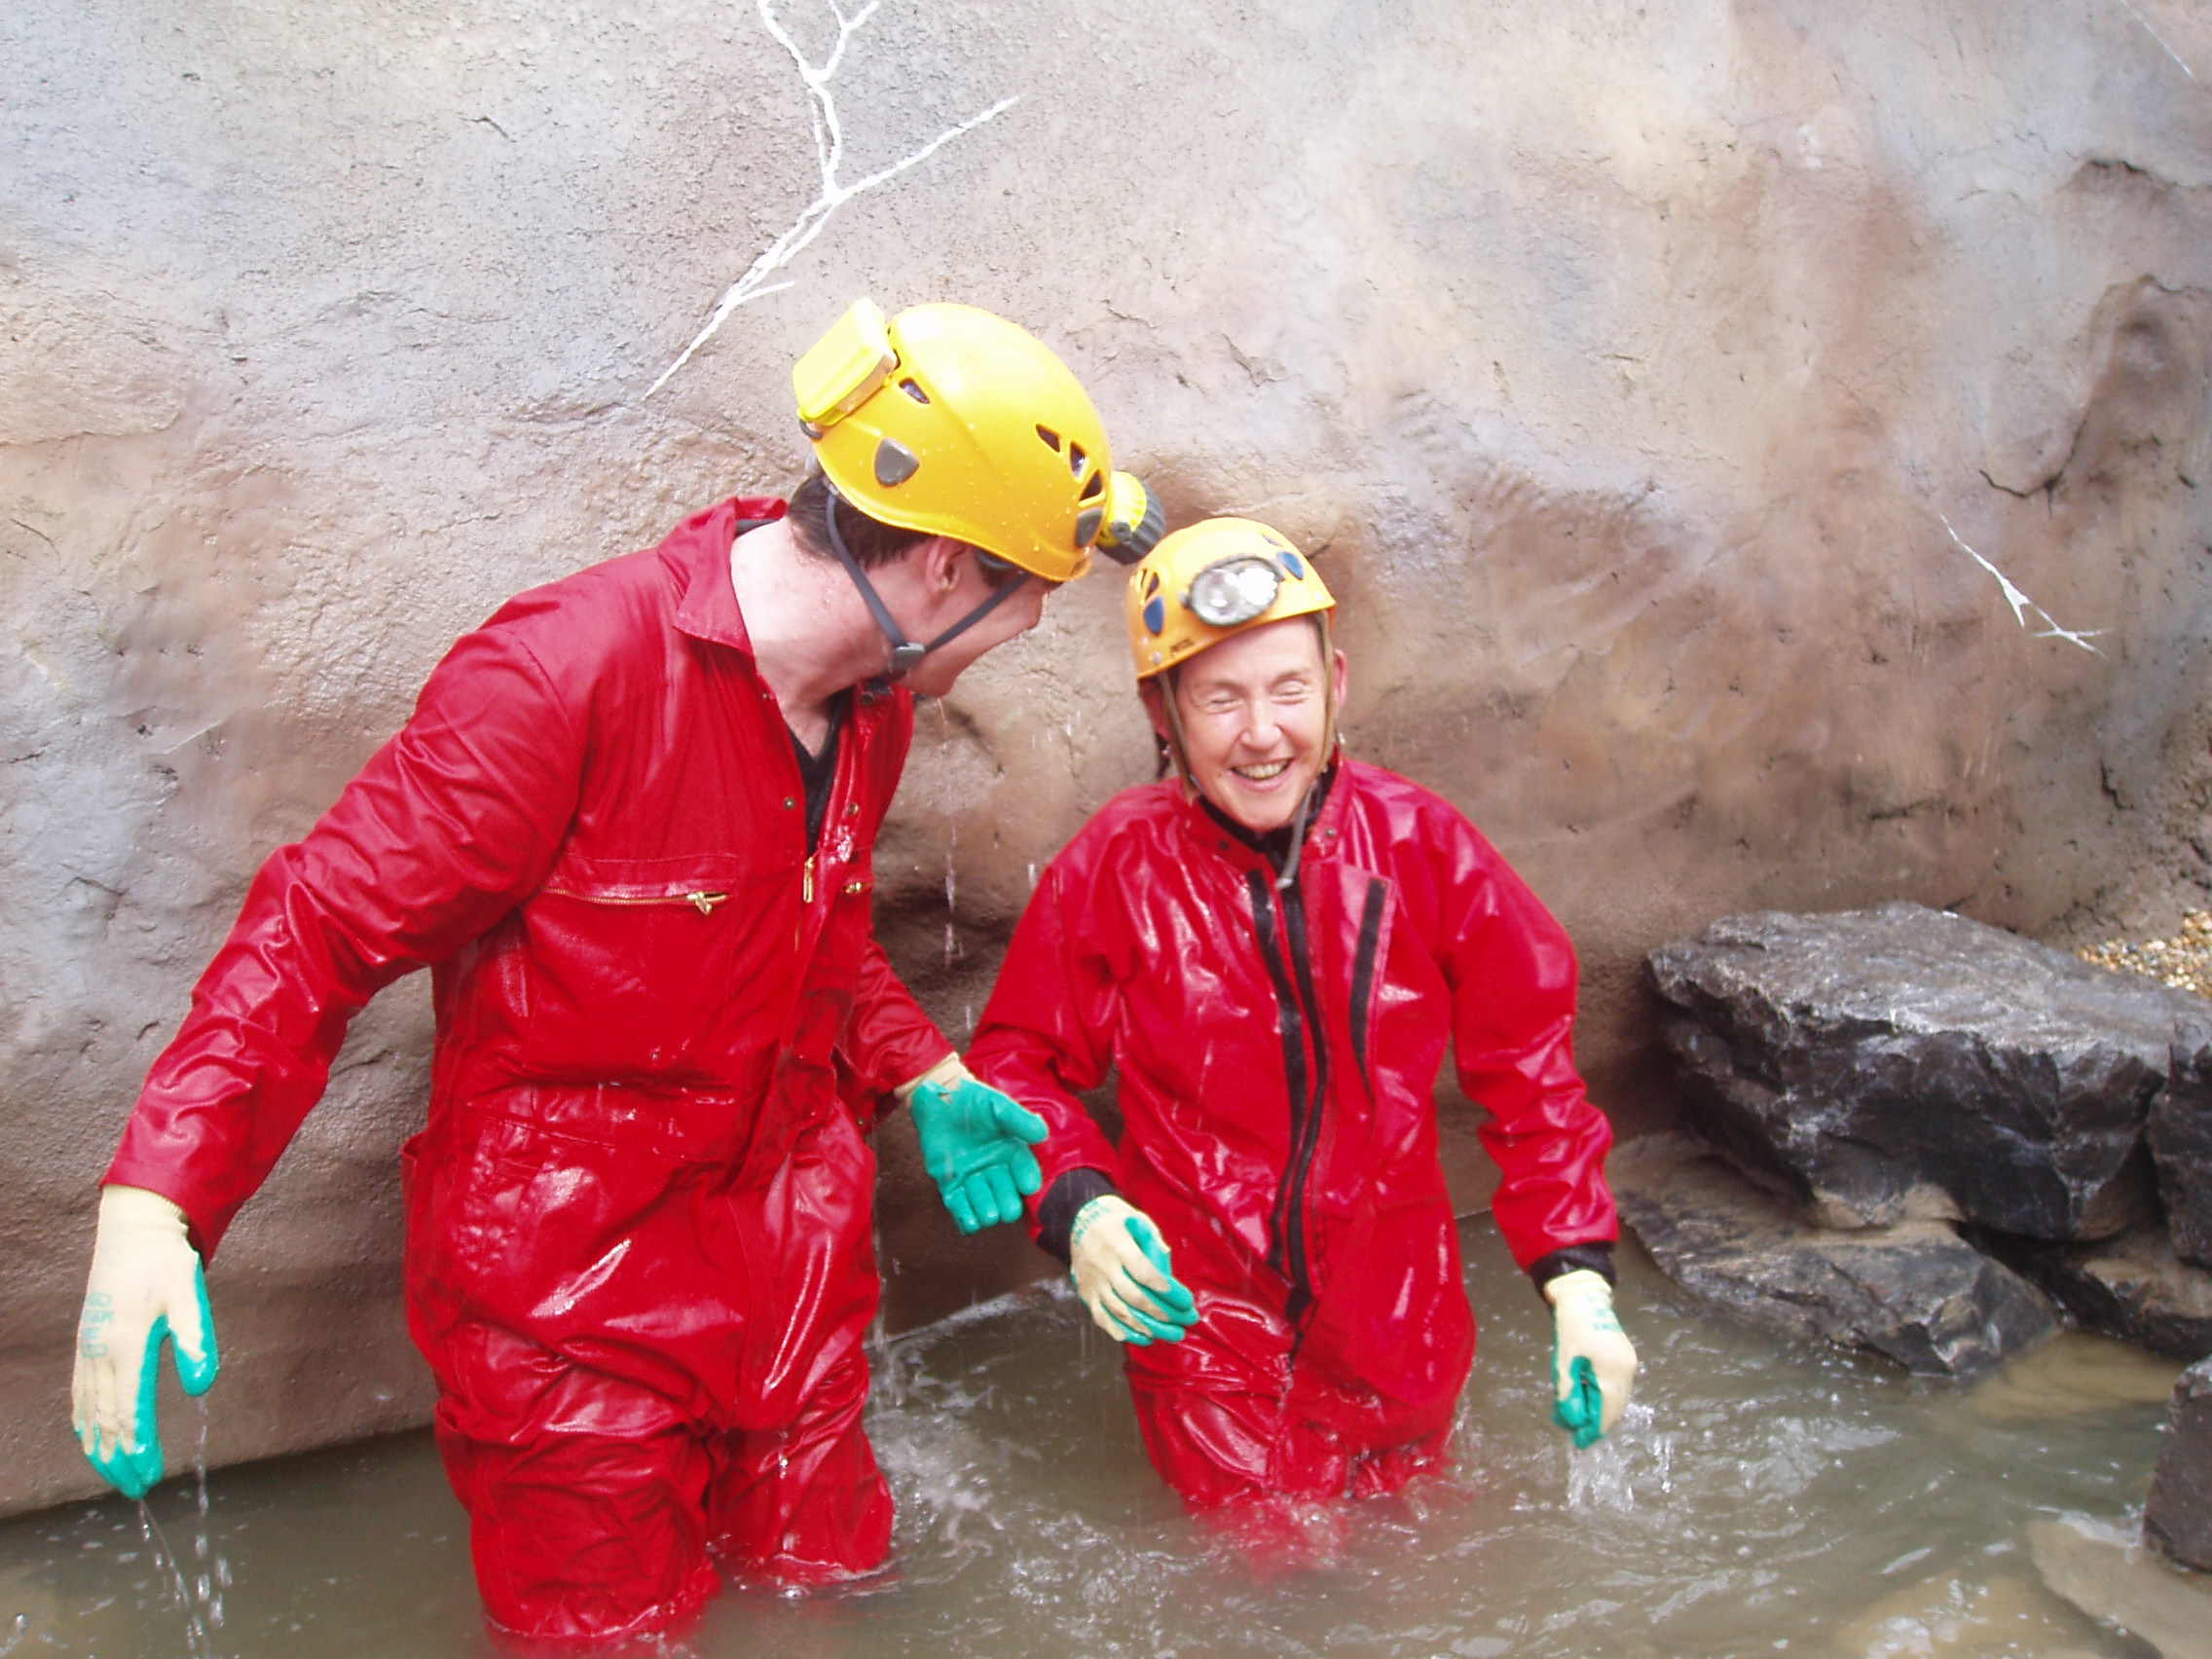 Caving with Pam Fogg